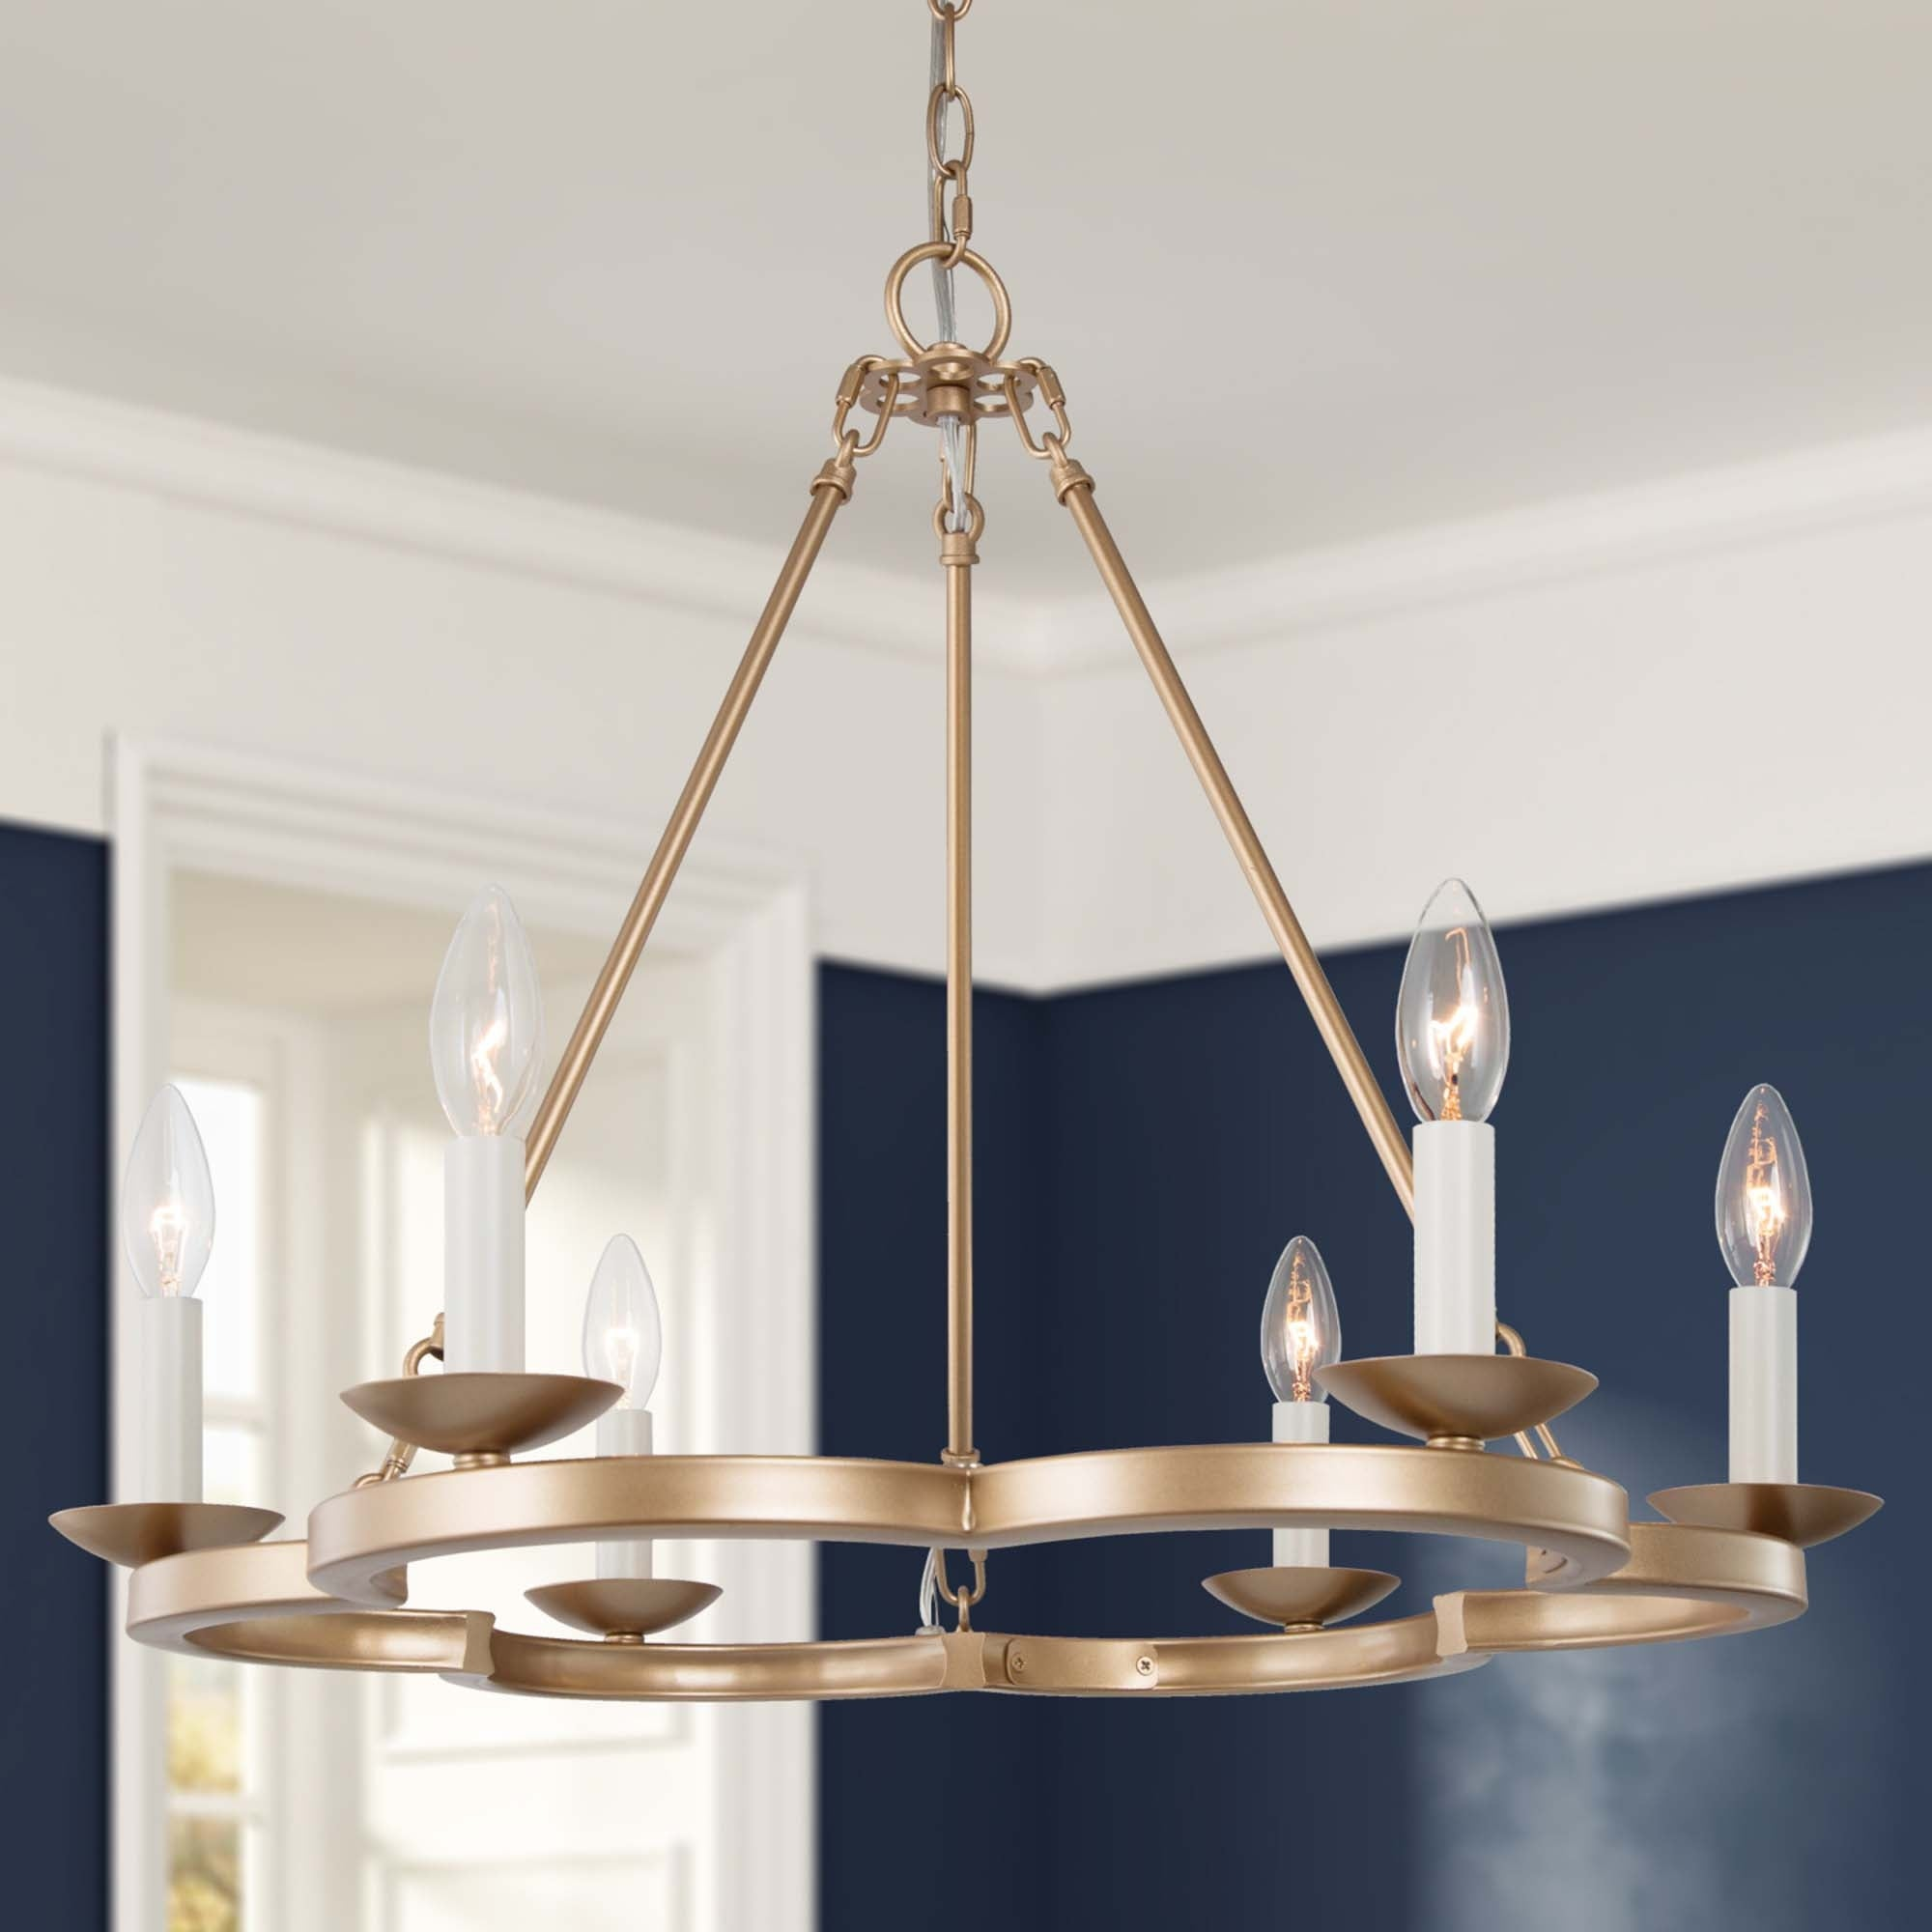 Mid Century 23 6 Inch 6 Light Gold Wagon Wheel Chandelier Candle Lighting For Dining Room Overstock 31946005